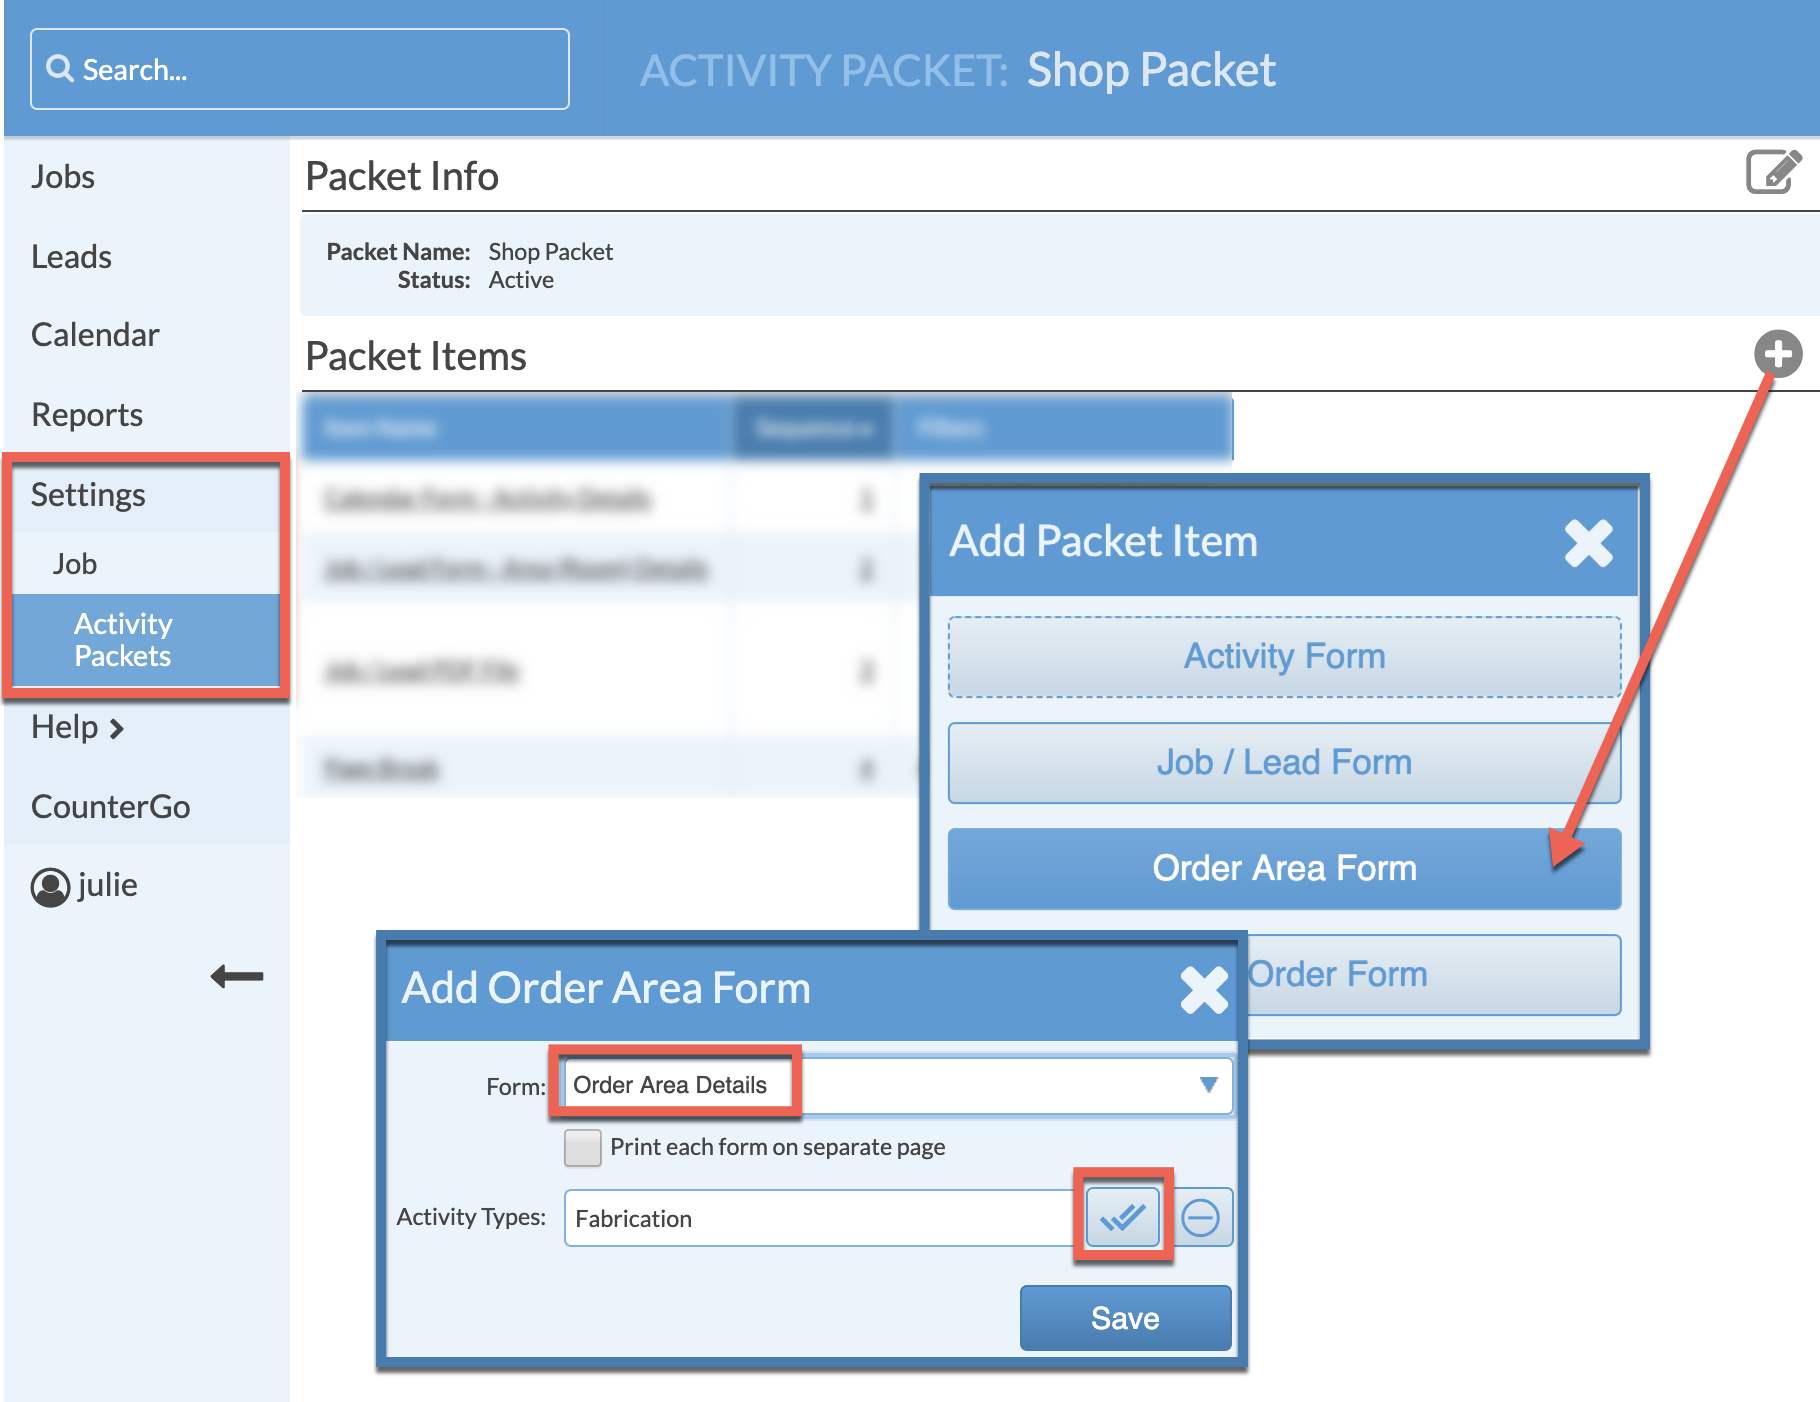 Add order area form to activity packet